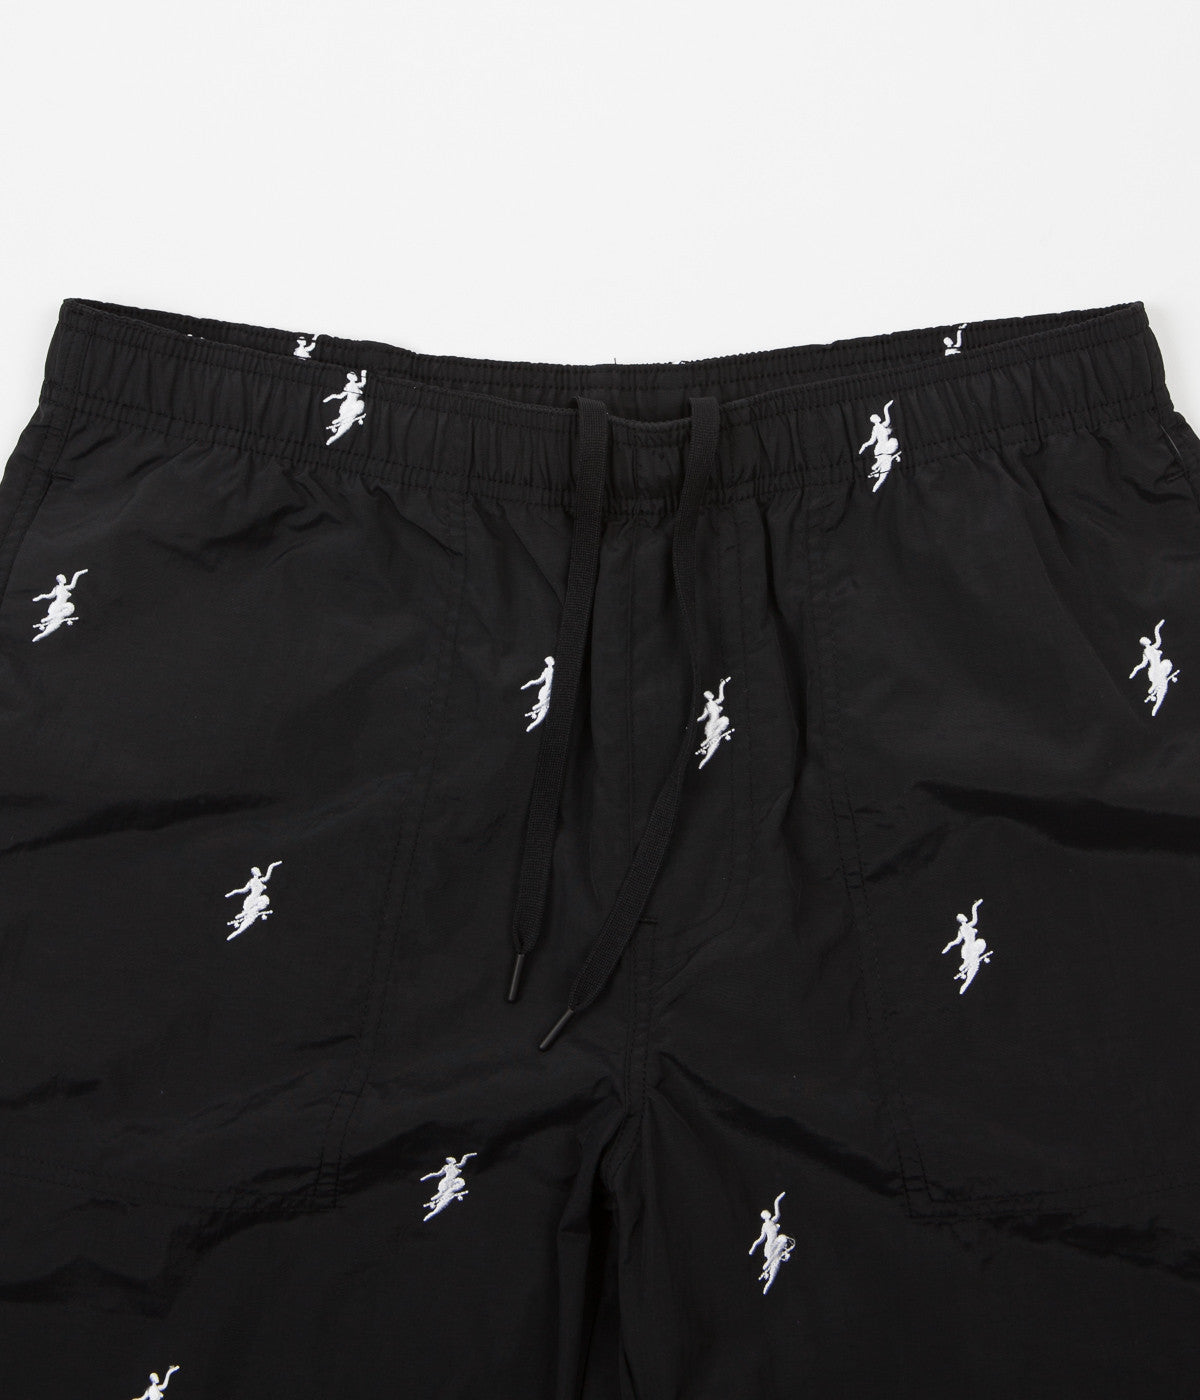 Converse x Polar Shorts - Black